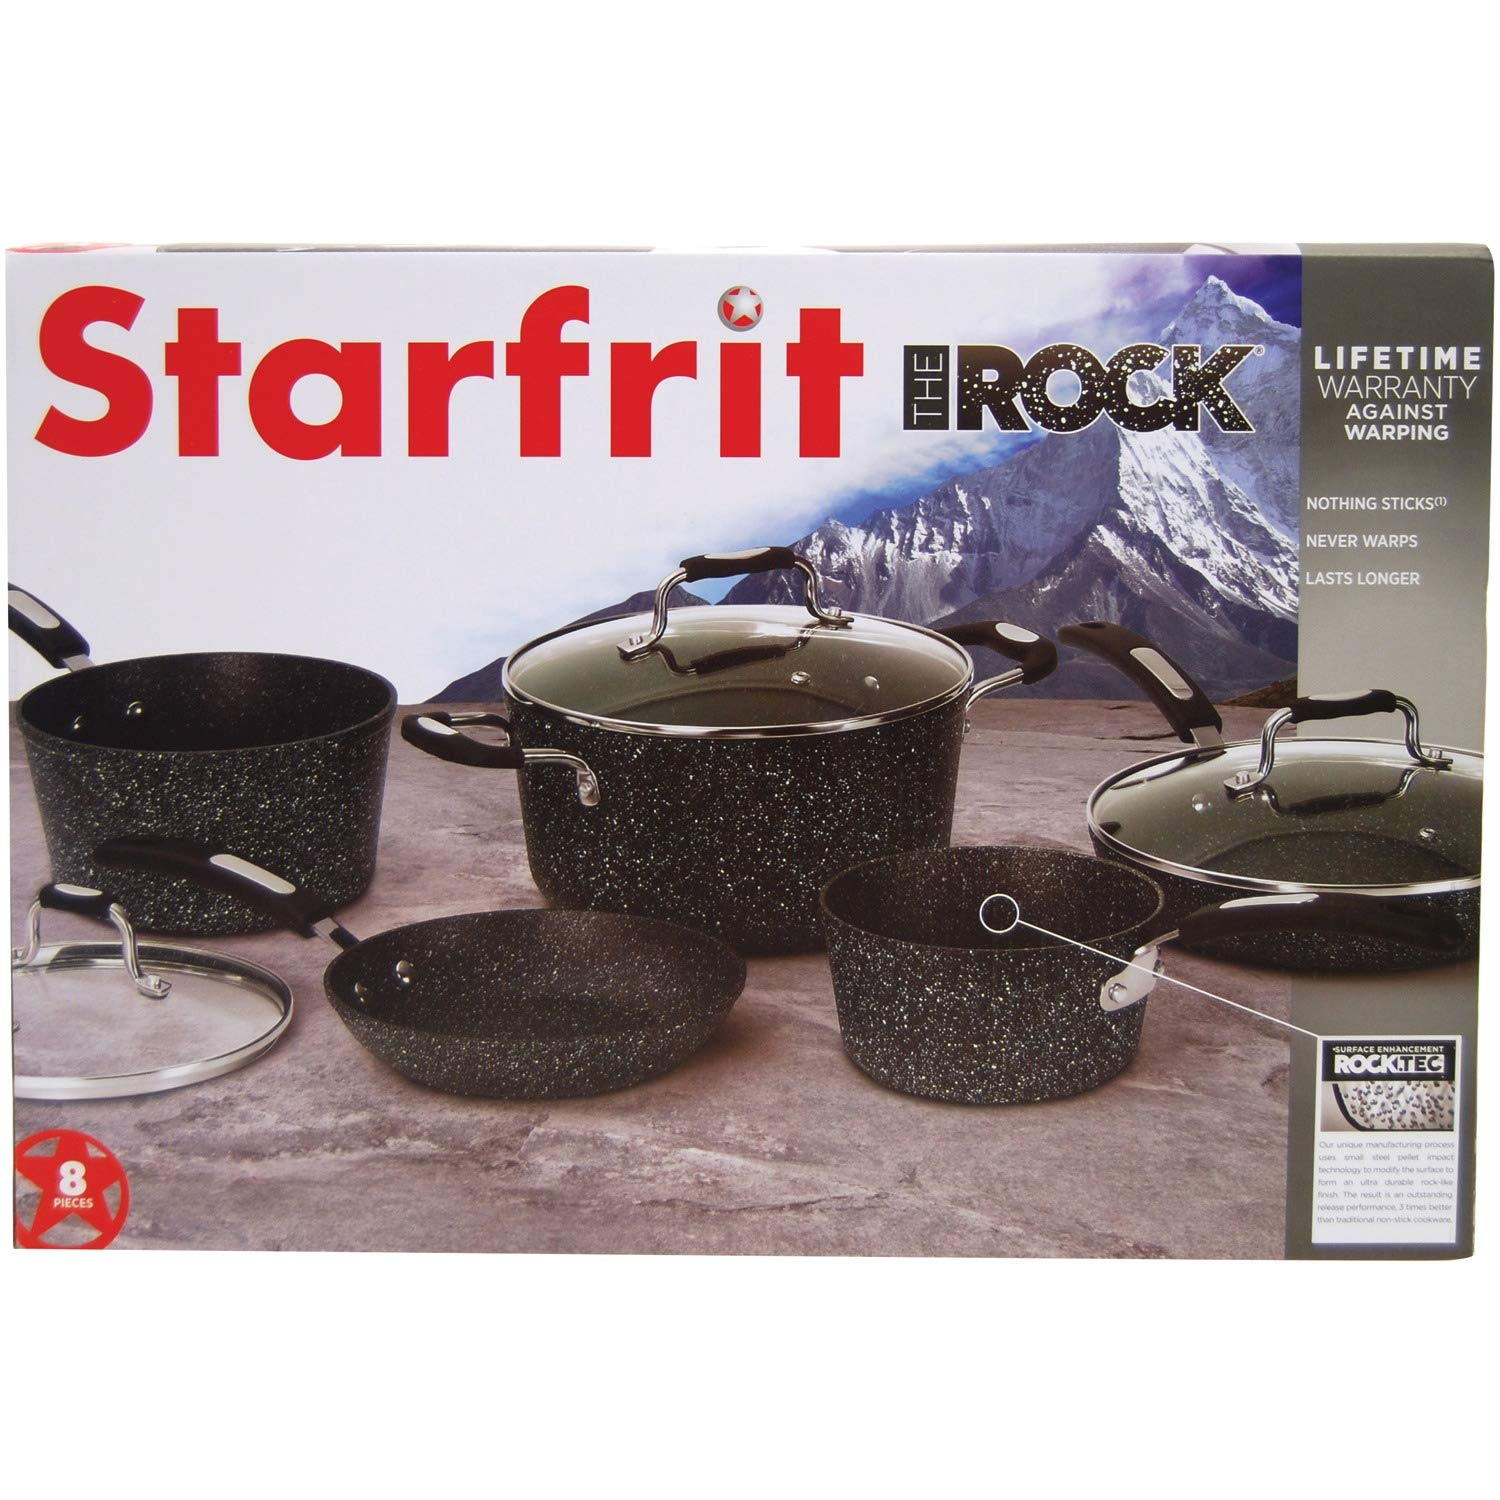 THE ROCK by Starfrit 030930-001-0000 8-Piece Cookware Set with Bakelite Handles, Black